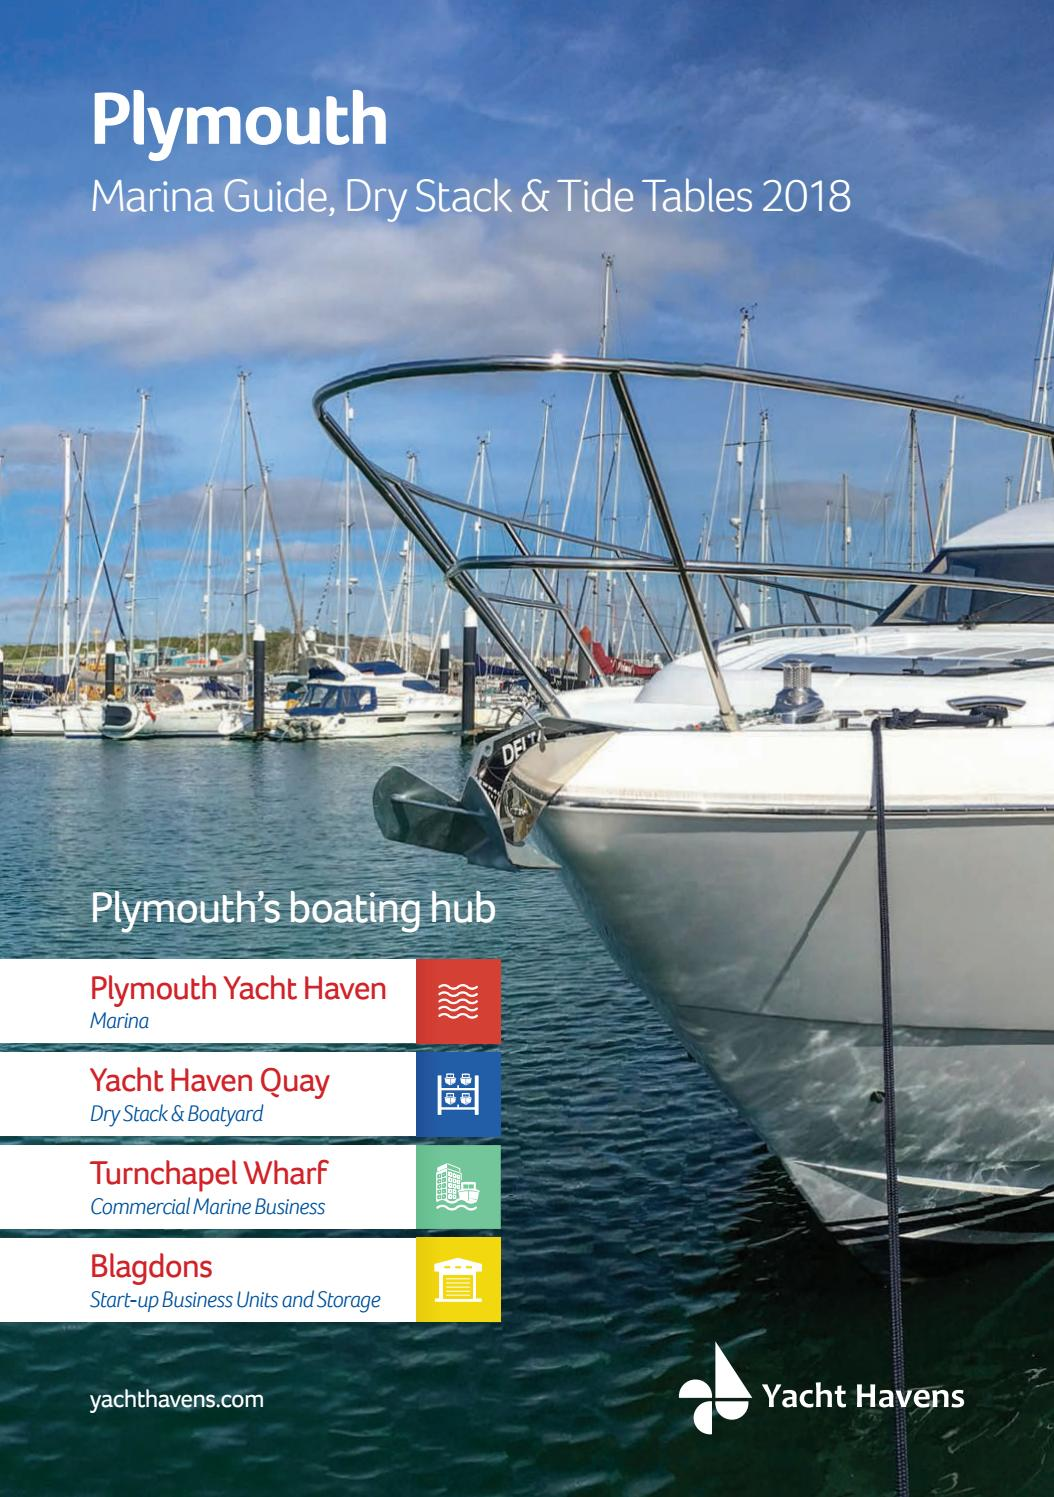 2018 Plymouth Marina Guide, Dry Stack & Tide Tables by yachthavens ...